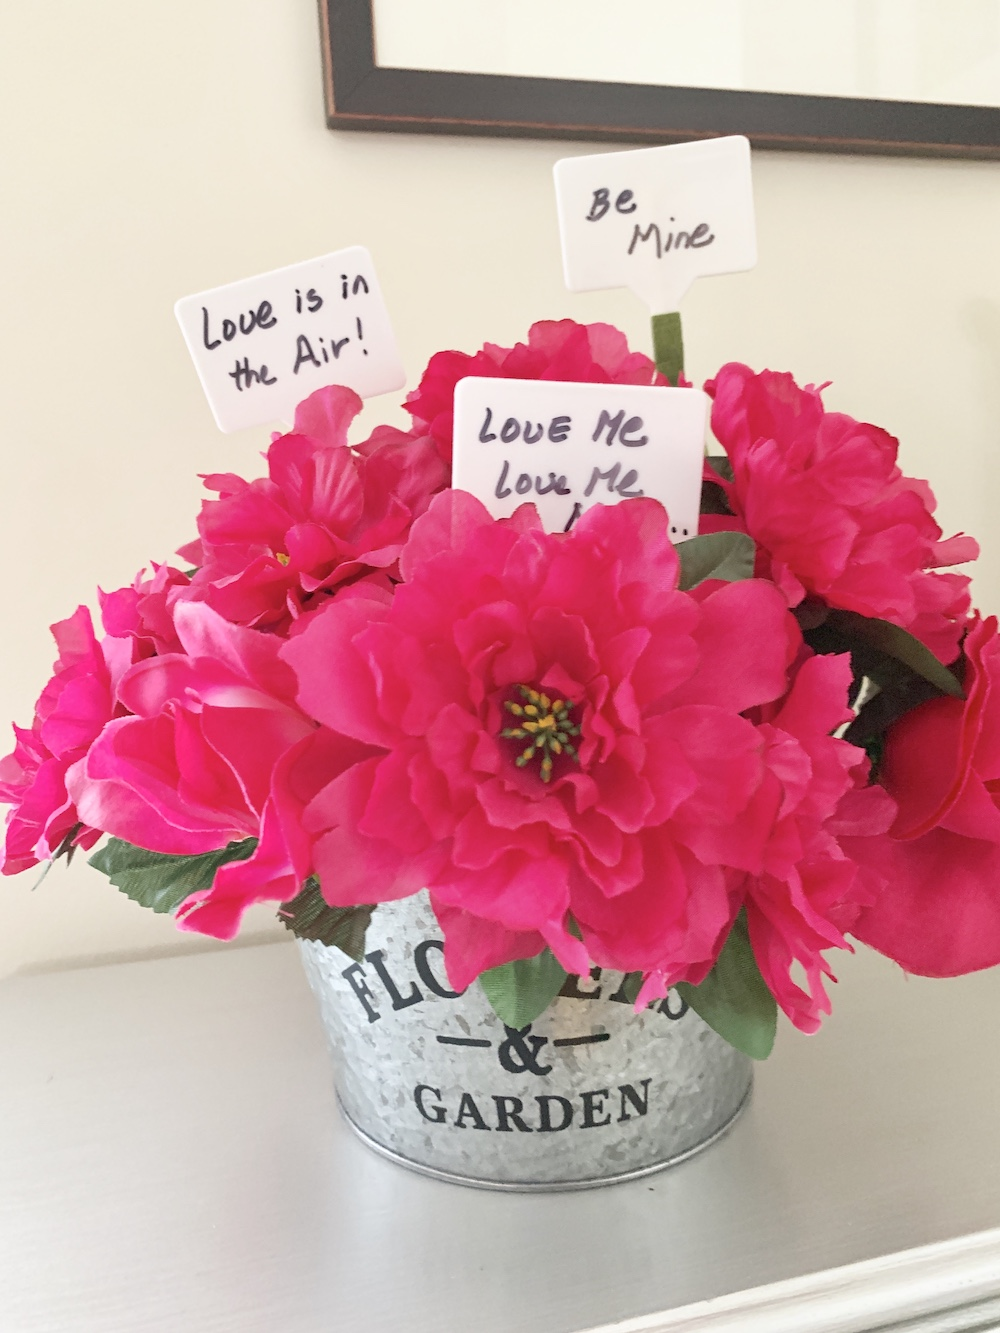 Valentine's Day Home Decor Messages of Love Floral Bucket #Farmhouse #Affordable #SimpleDecor #QuickAndEasy #BudgetFriendly #Valentine #ValentinesDay #DIY #StValentinesDecor #FarmhouseDecor